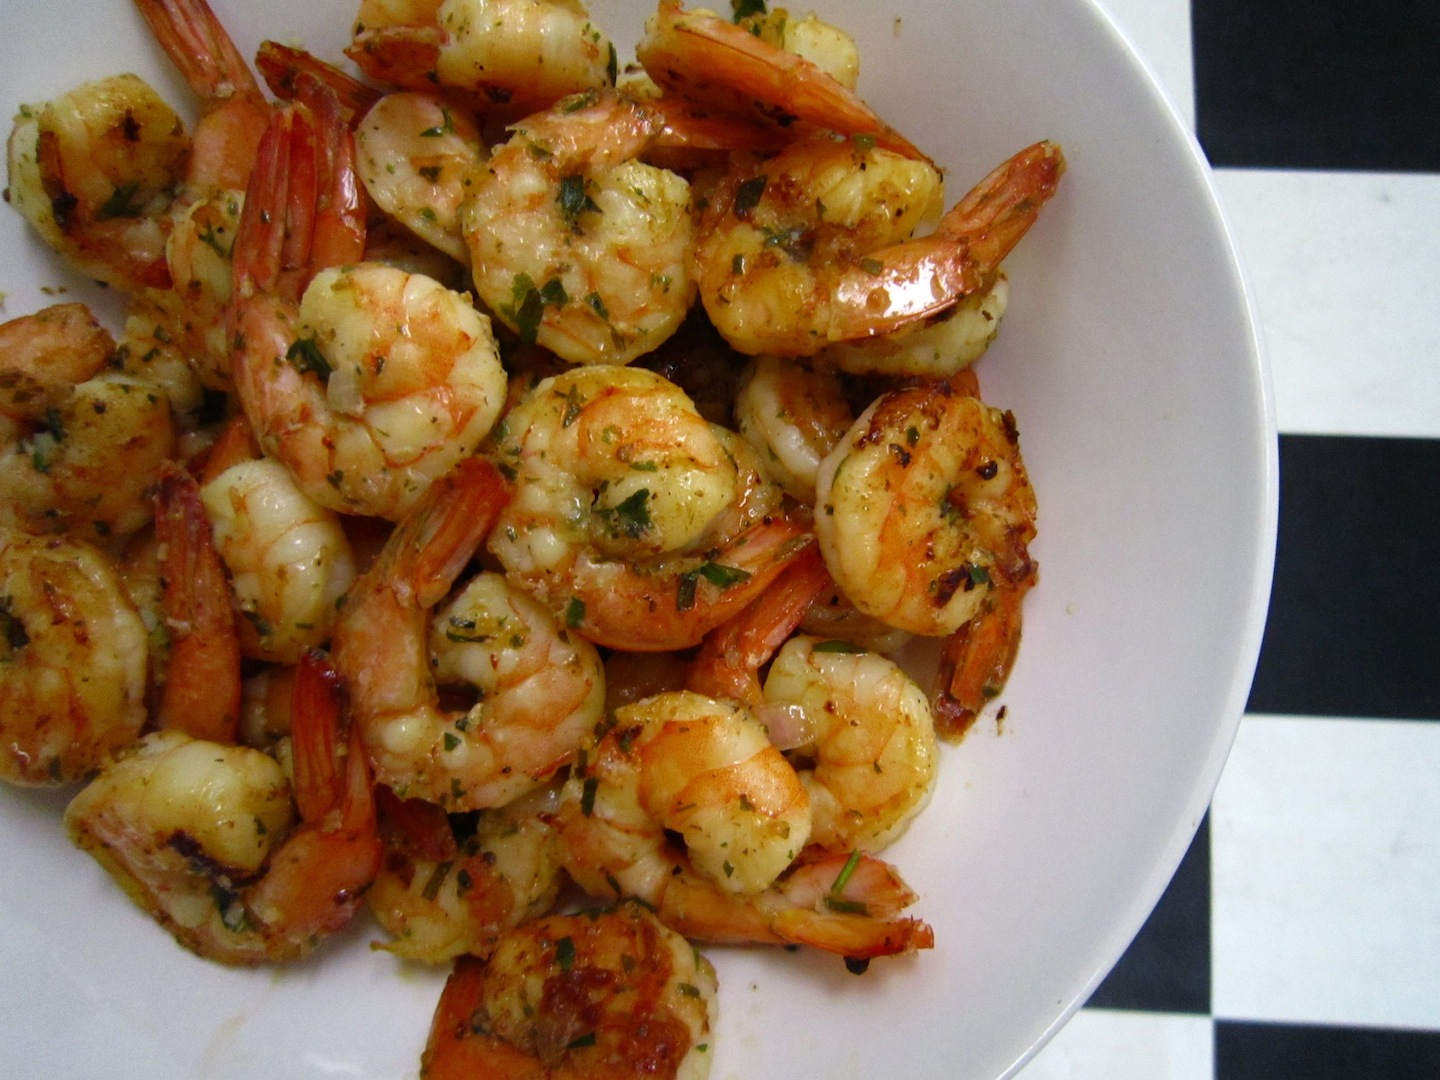 Tarragon-Grapefruit Shrimp, with apologies to mrslarkin